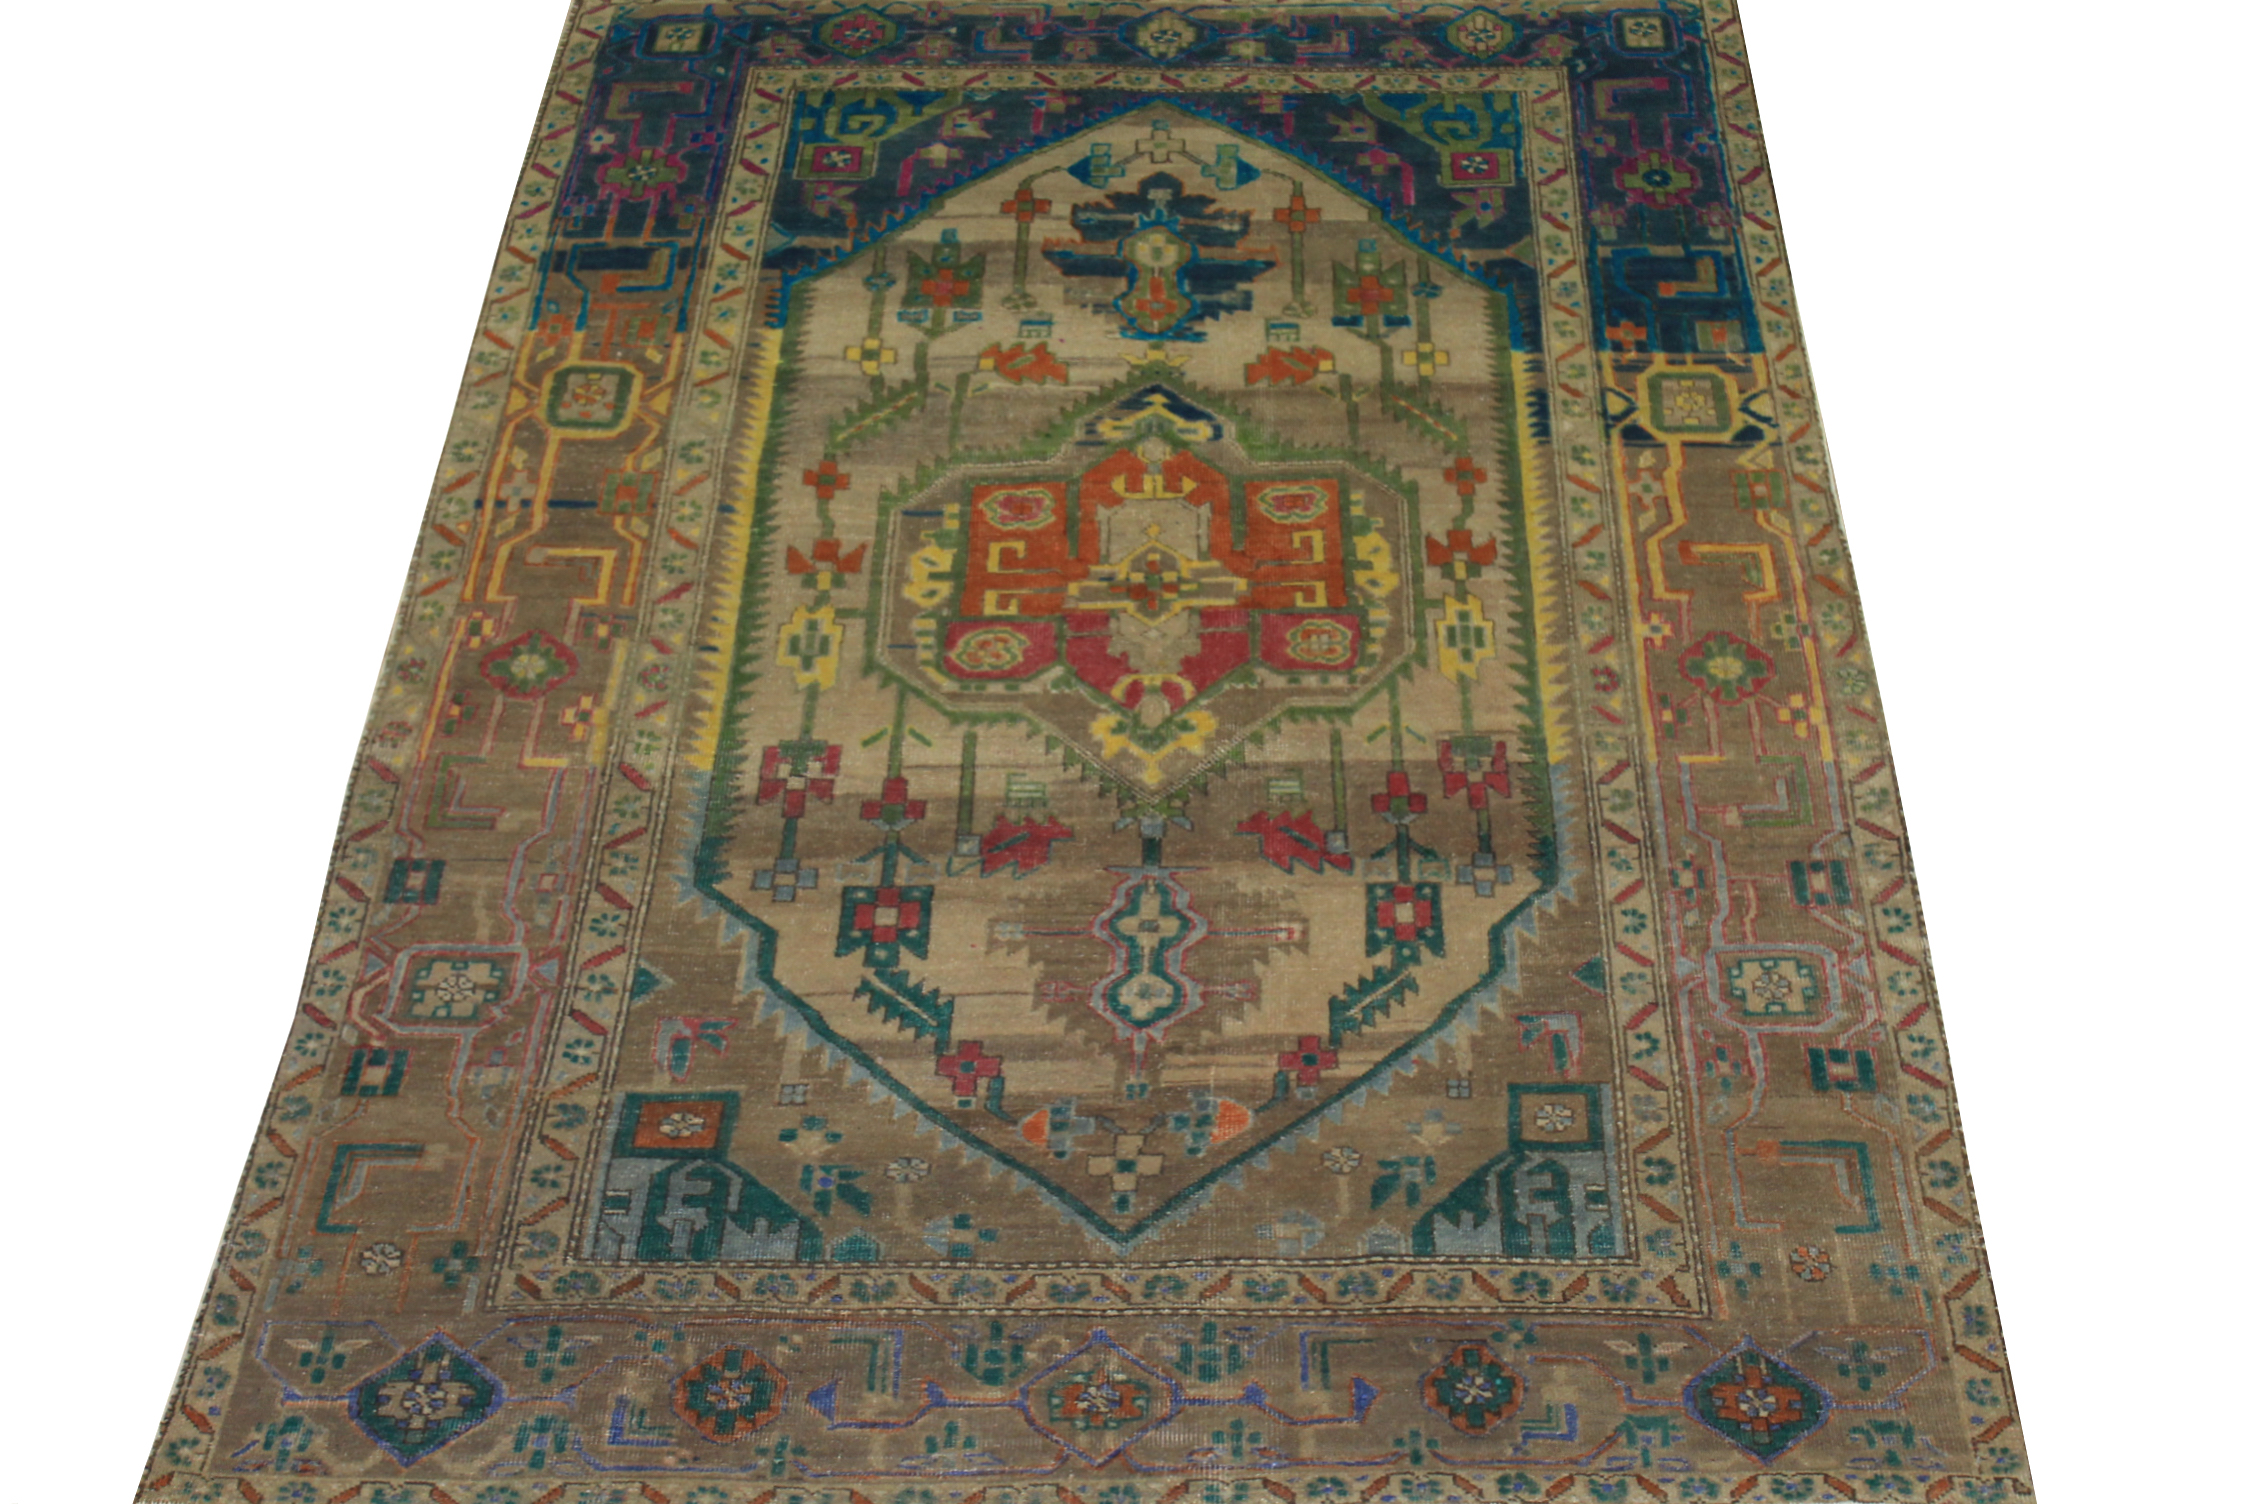 4x6 Vintage Hand Knotted Wool Area Rug - MR024471